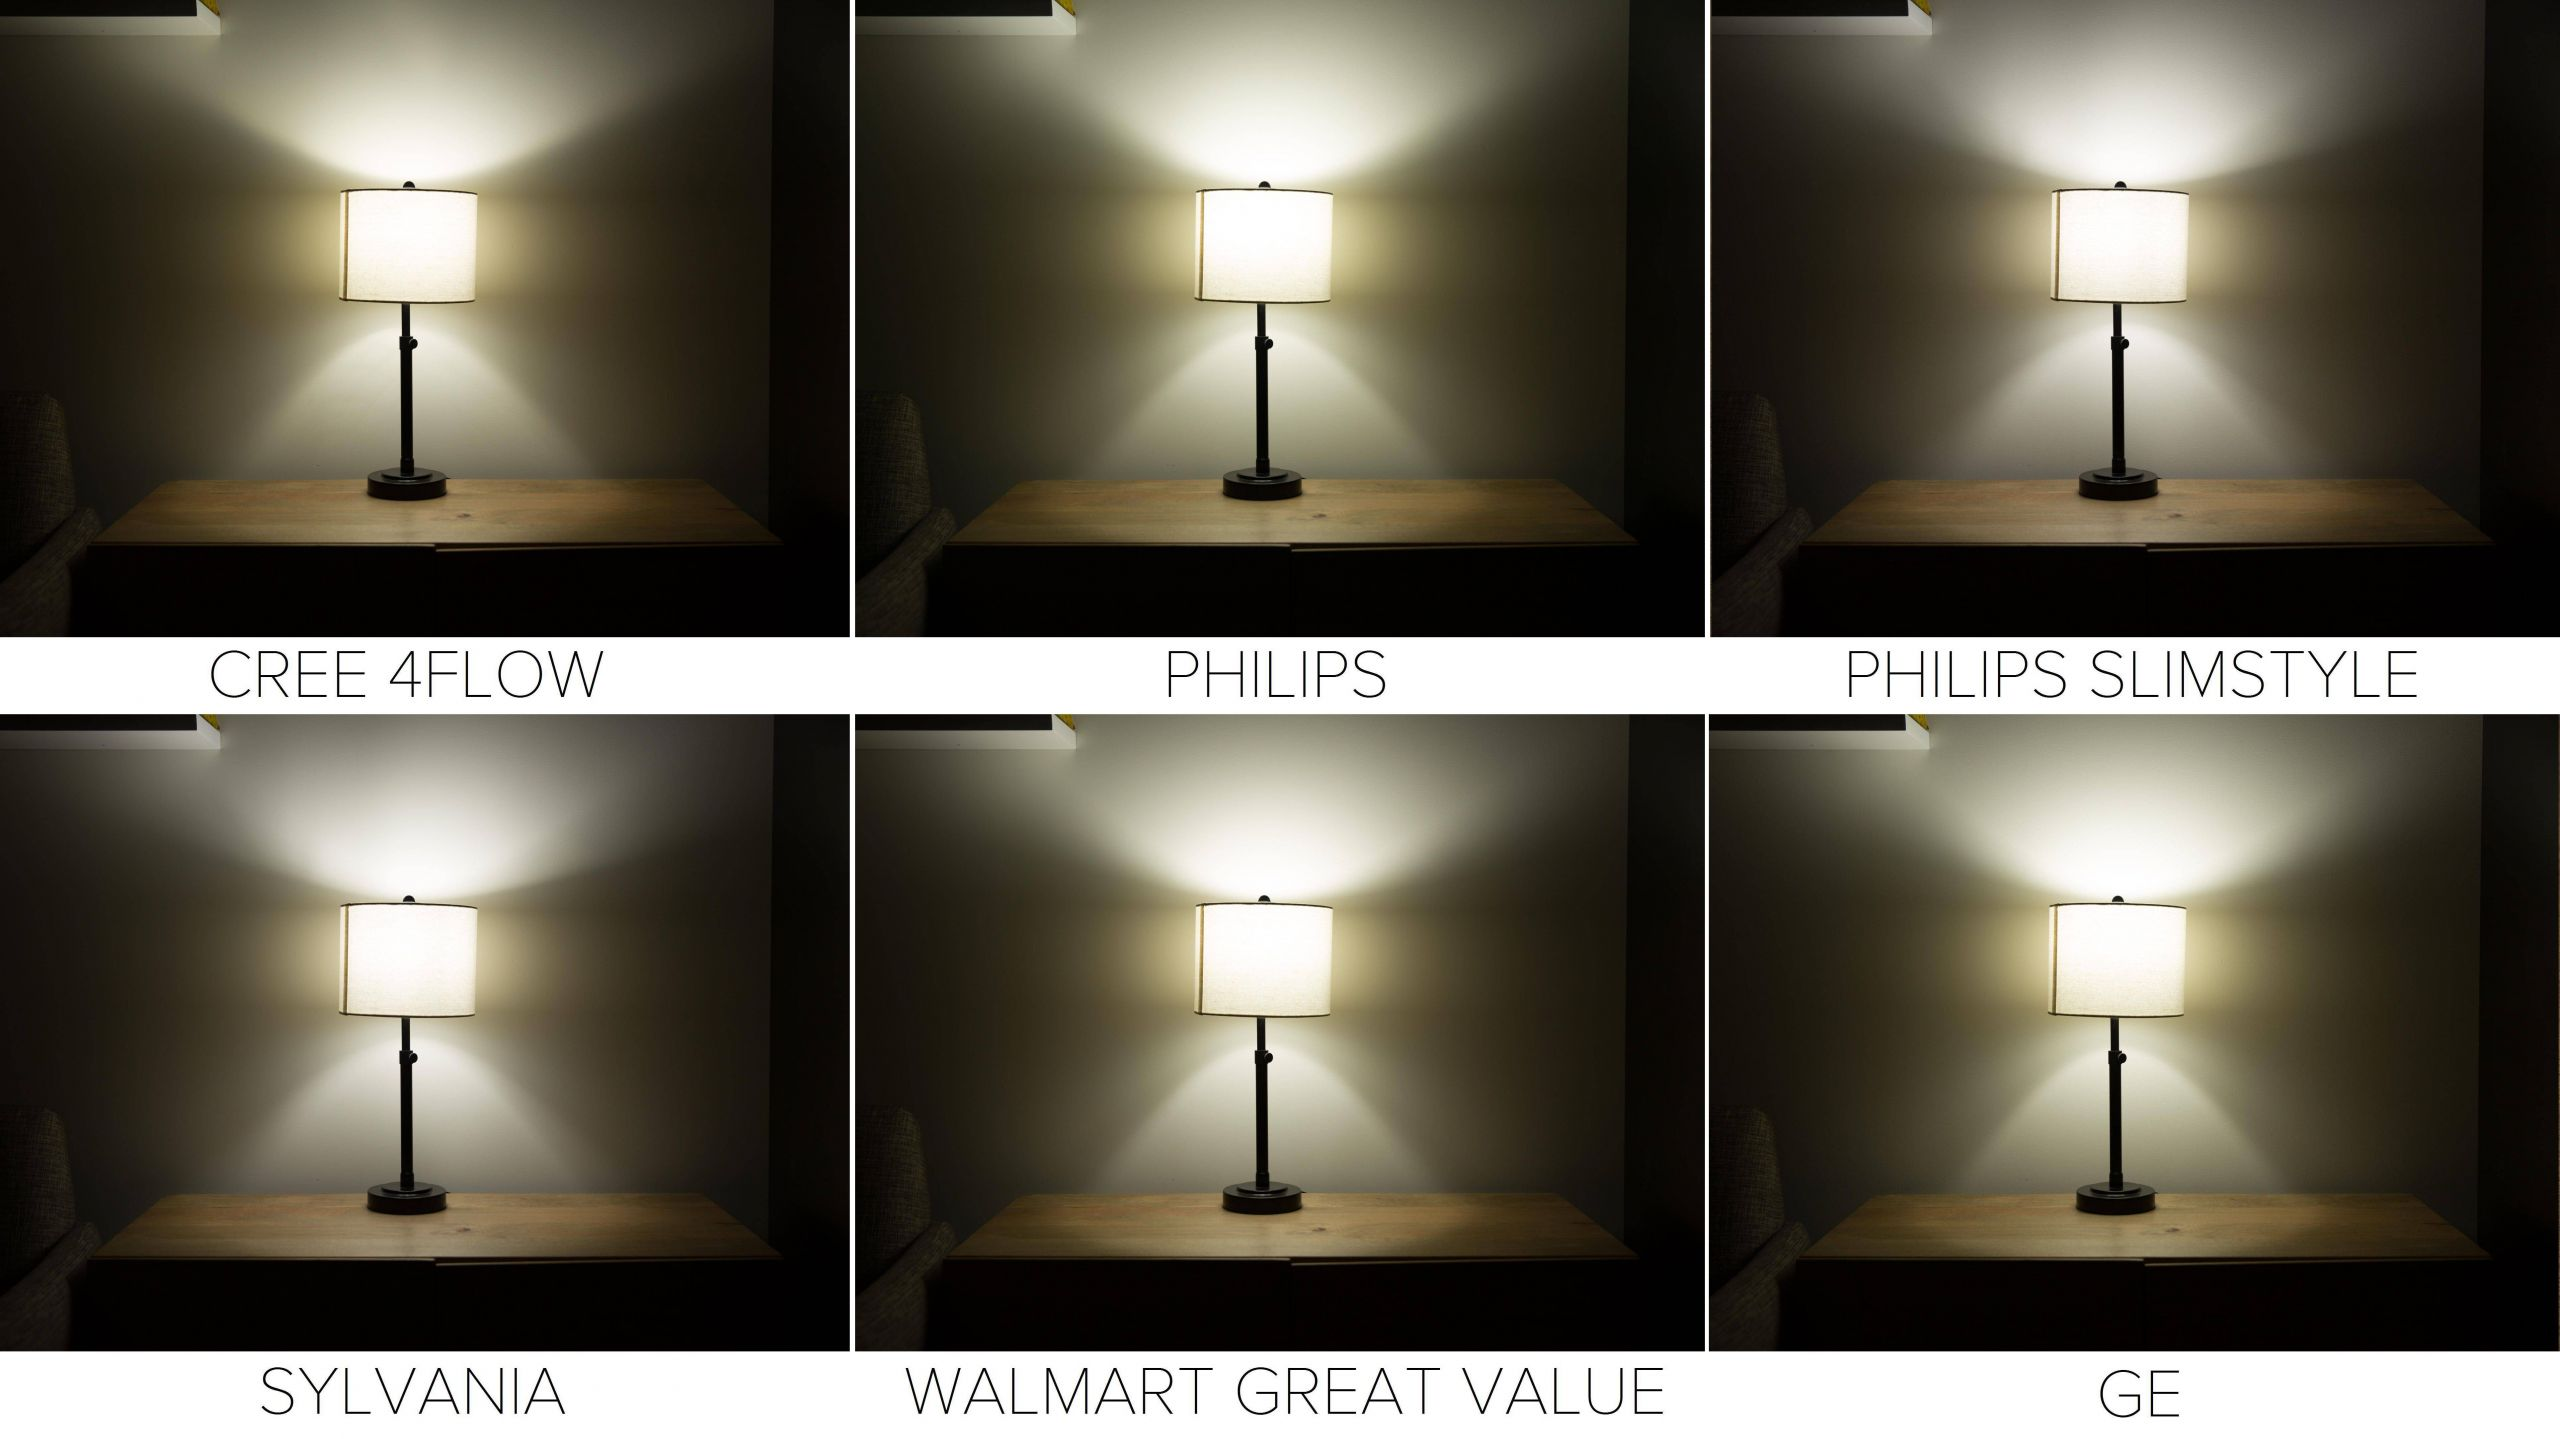 Good Lighting Inspirational Daylight Led Light Bulbs which Ones are Best